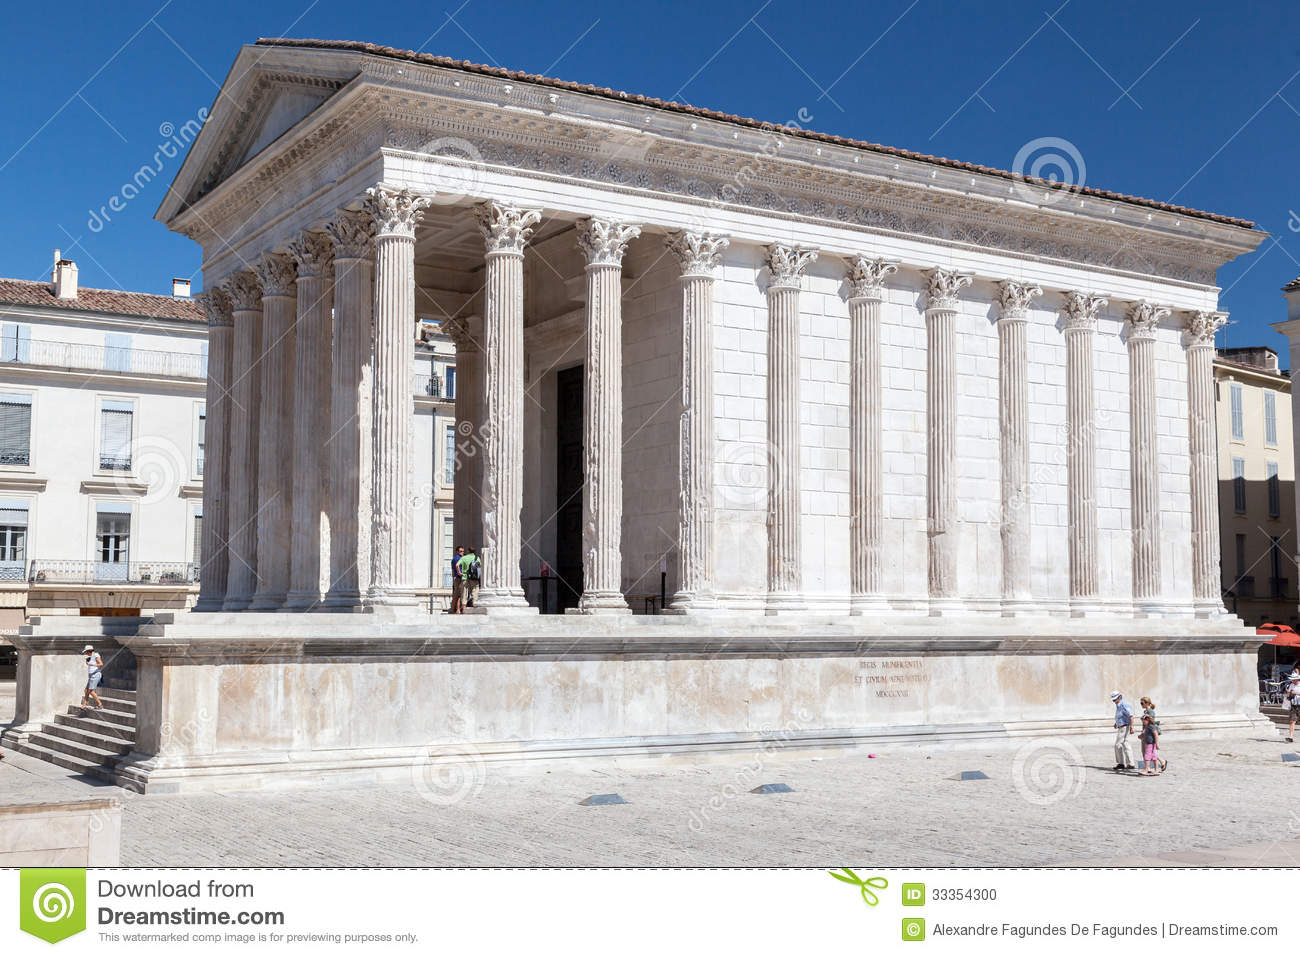 Maison carree nimes france editorial image image of - Maison carree nimes ...